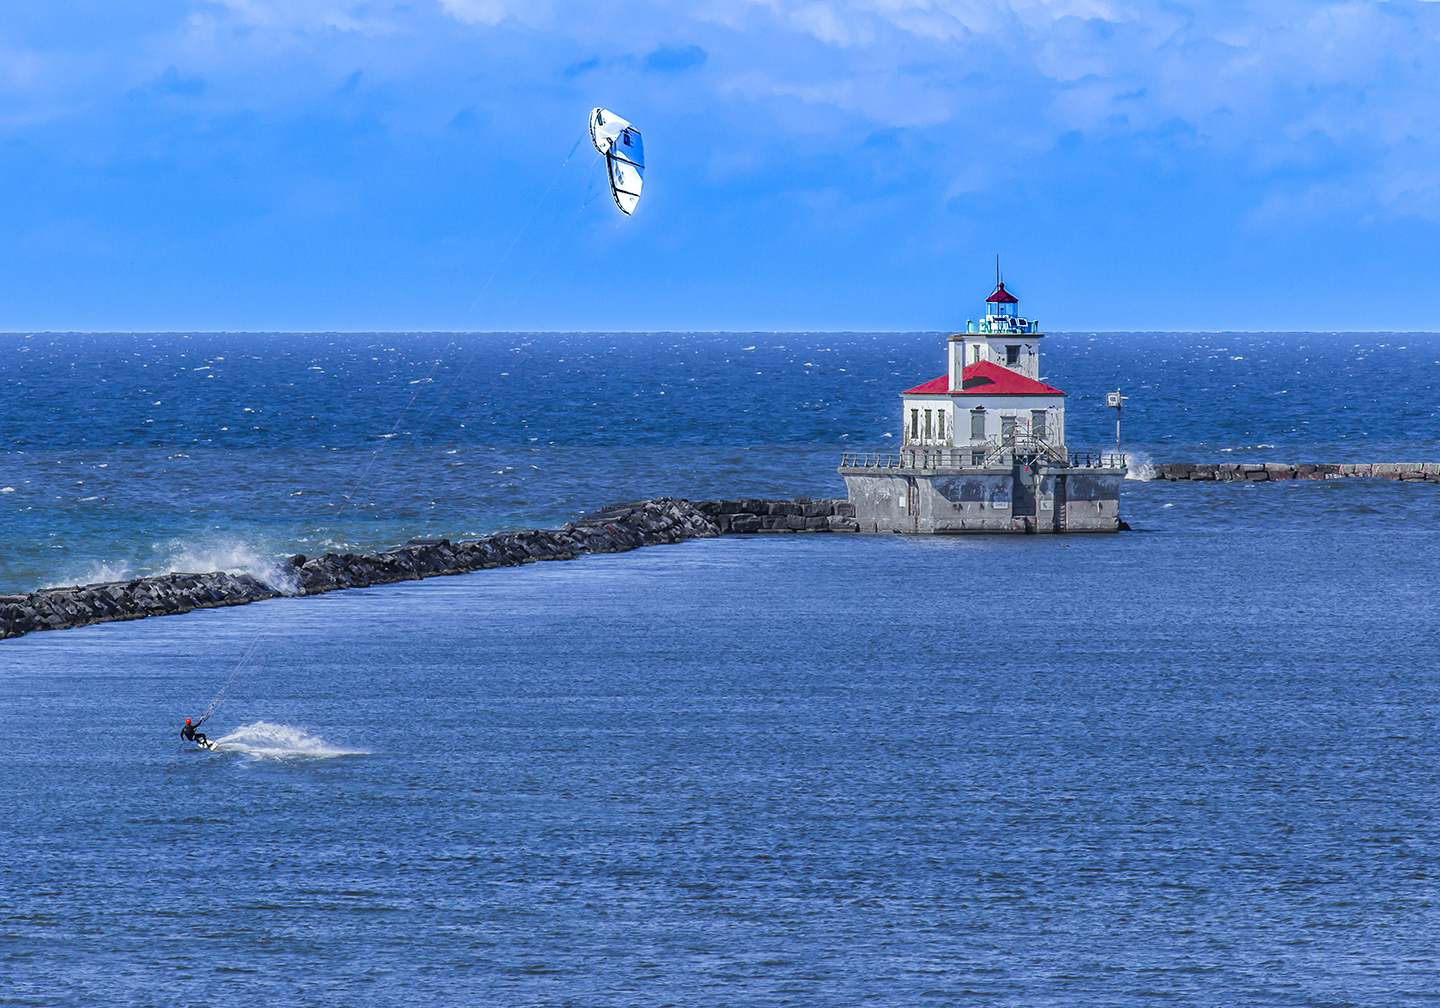 A kite-surfer on Lake Ontario with Oswego's lighthouse behind him.